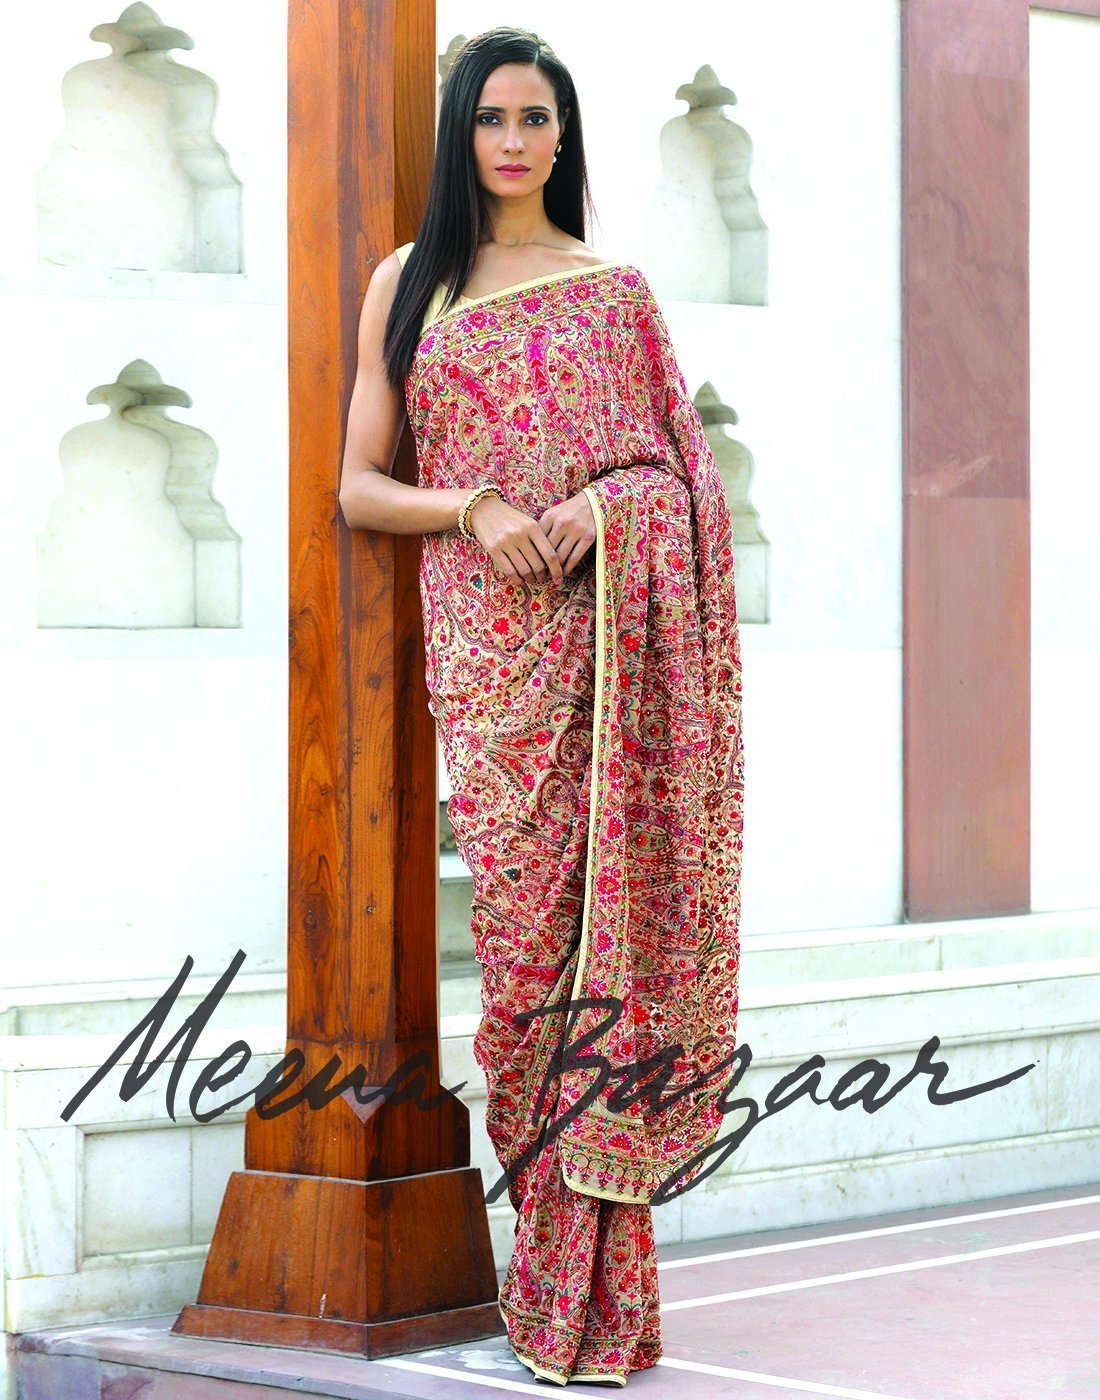 Meena bazaar: Georgette saree with multi-colour embroidery